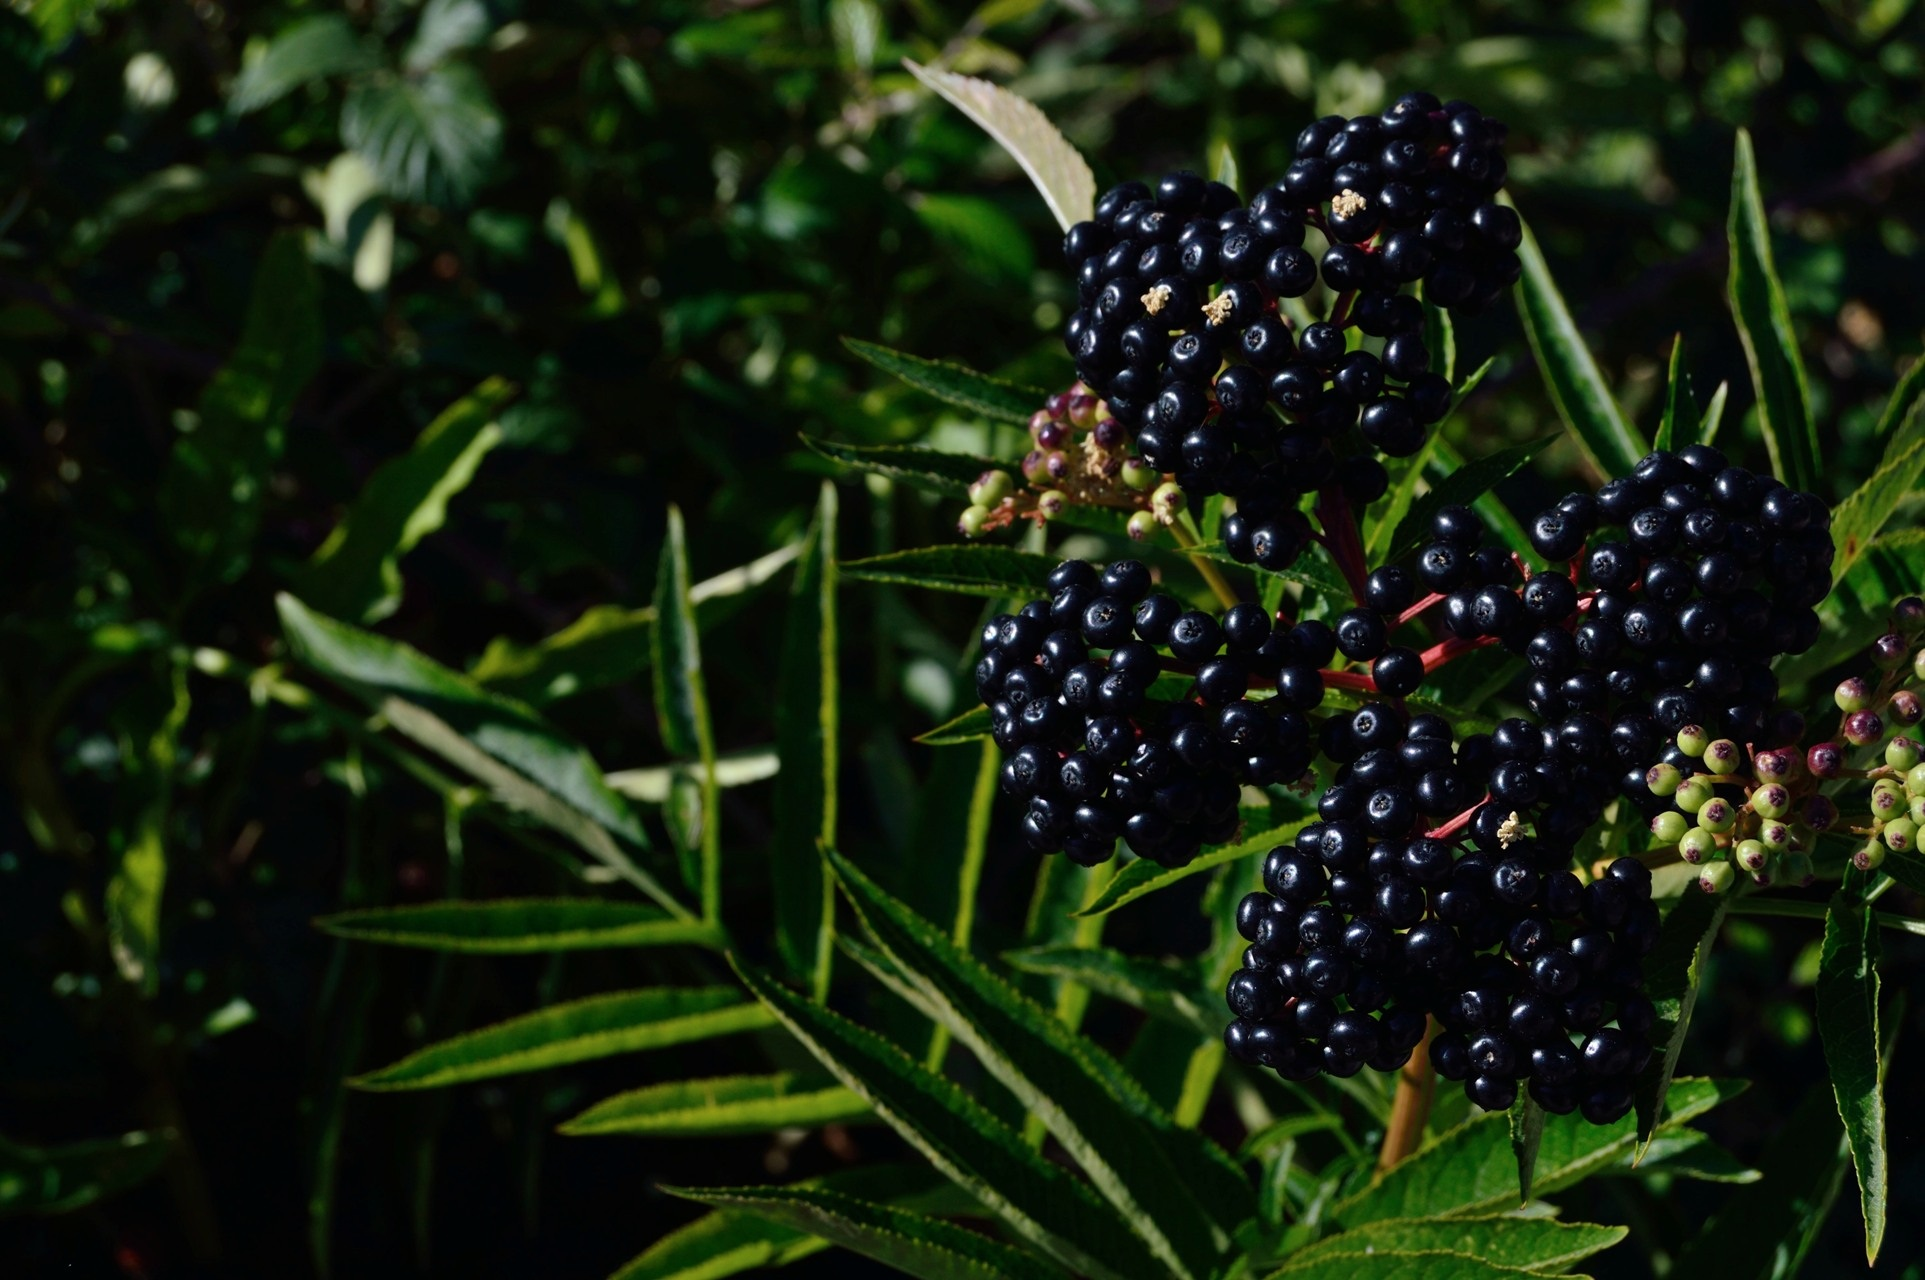 Ripe Blackberries just right for a Blackberry Crumble | apolo12 pixabay.com